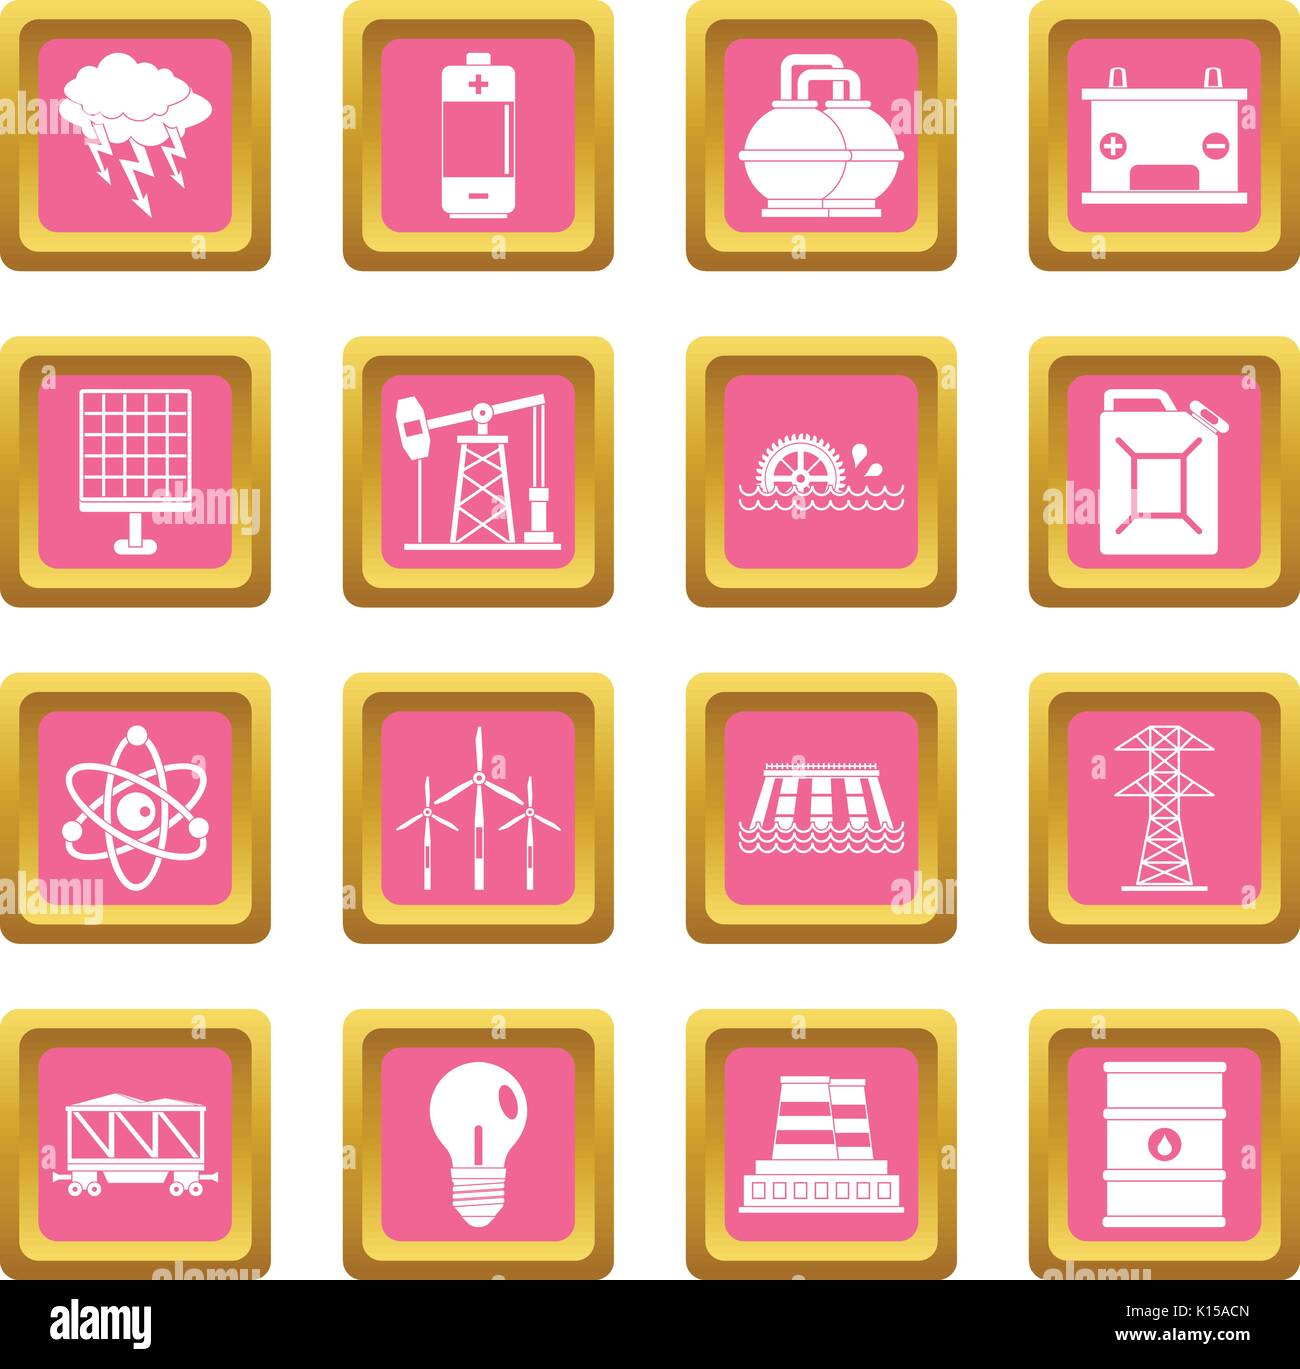 Energy sources items icons pink - Stock Image